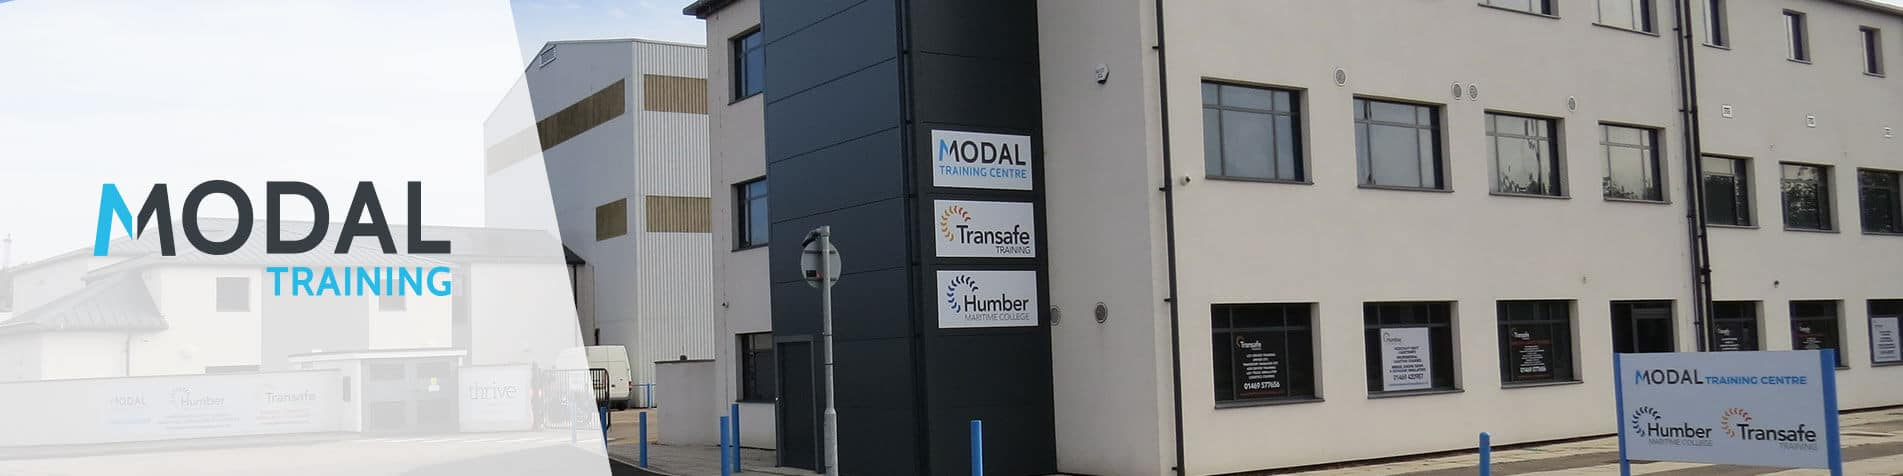 About MODAL